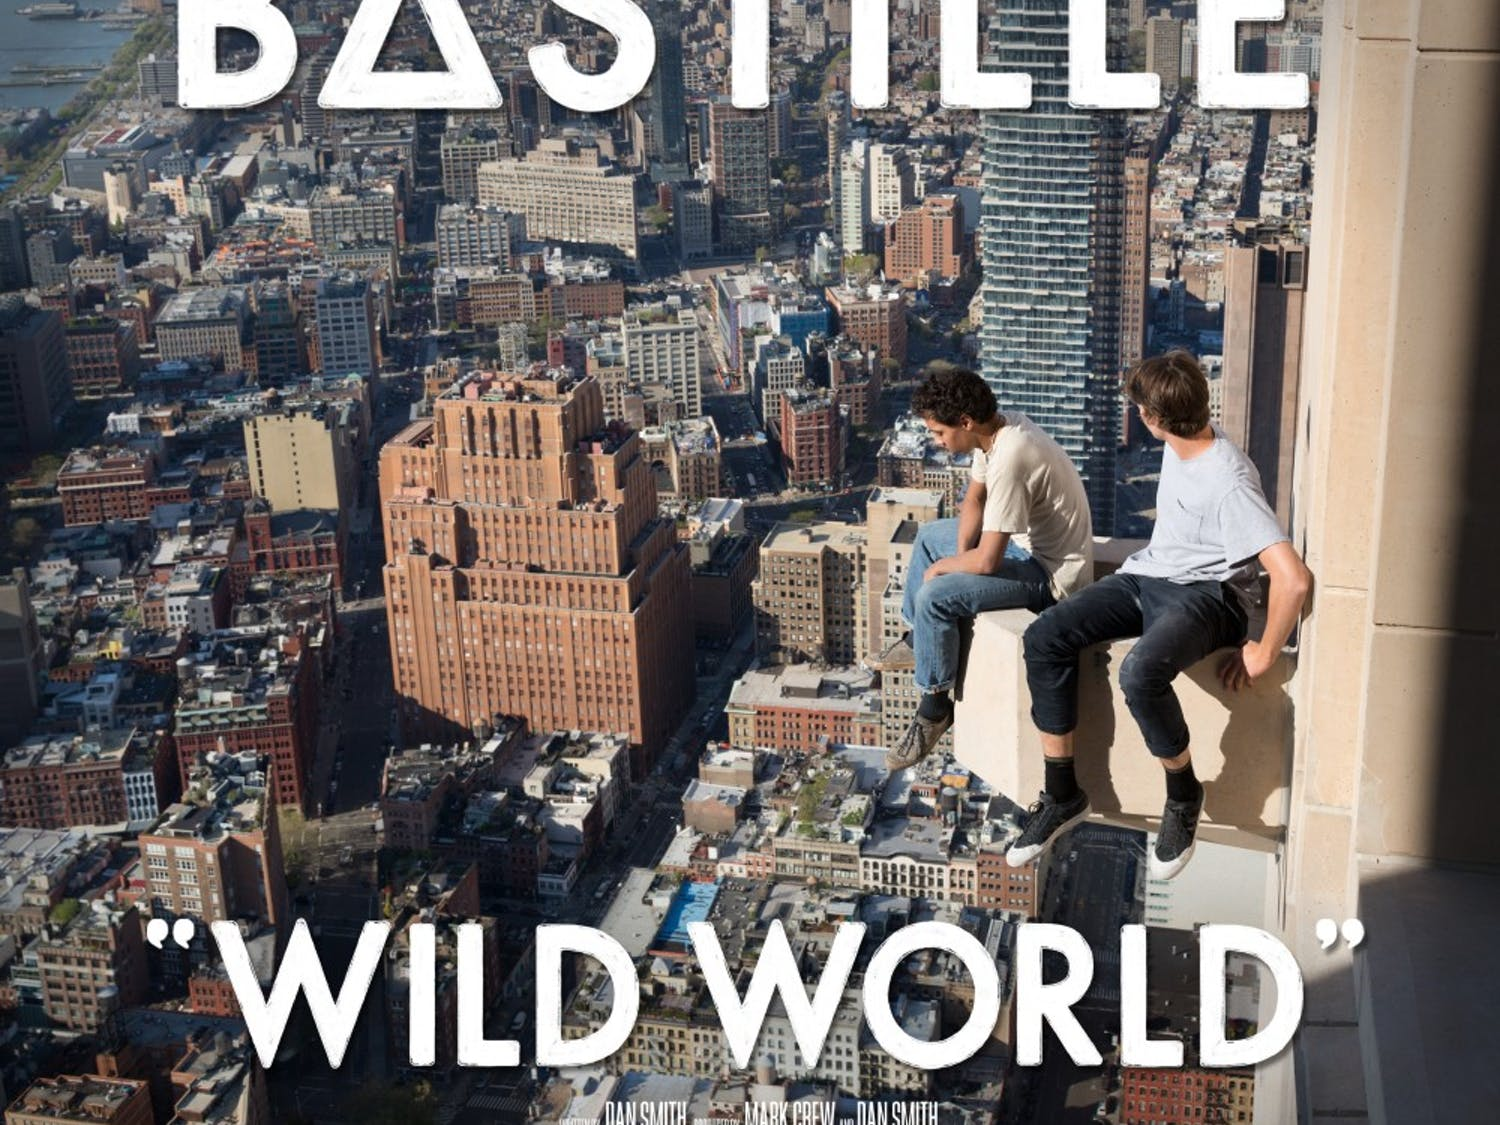 """Bastille's sophomore album """"Wild World"""" focuses on important social issues with catchy, upbeat tunes"""